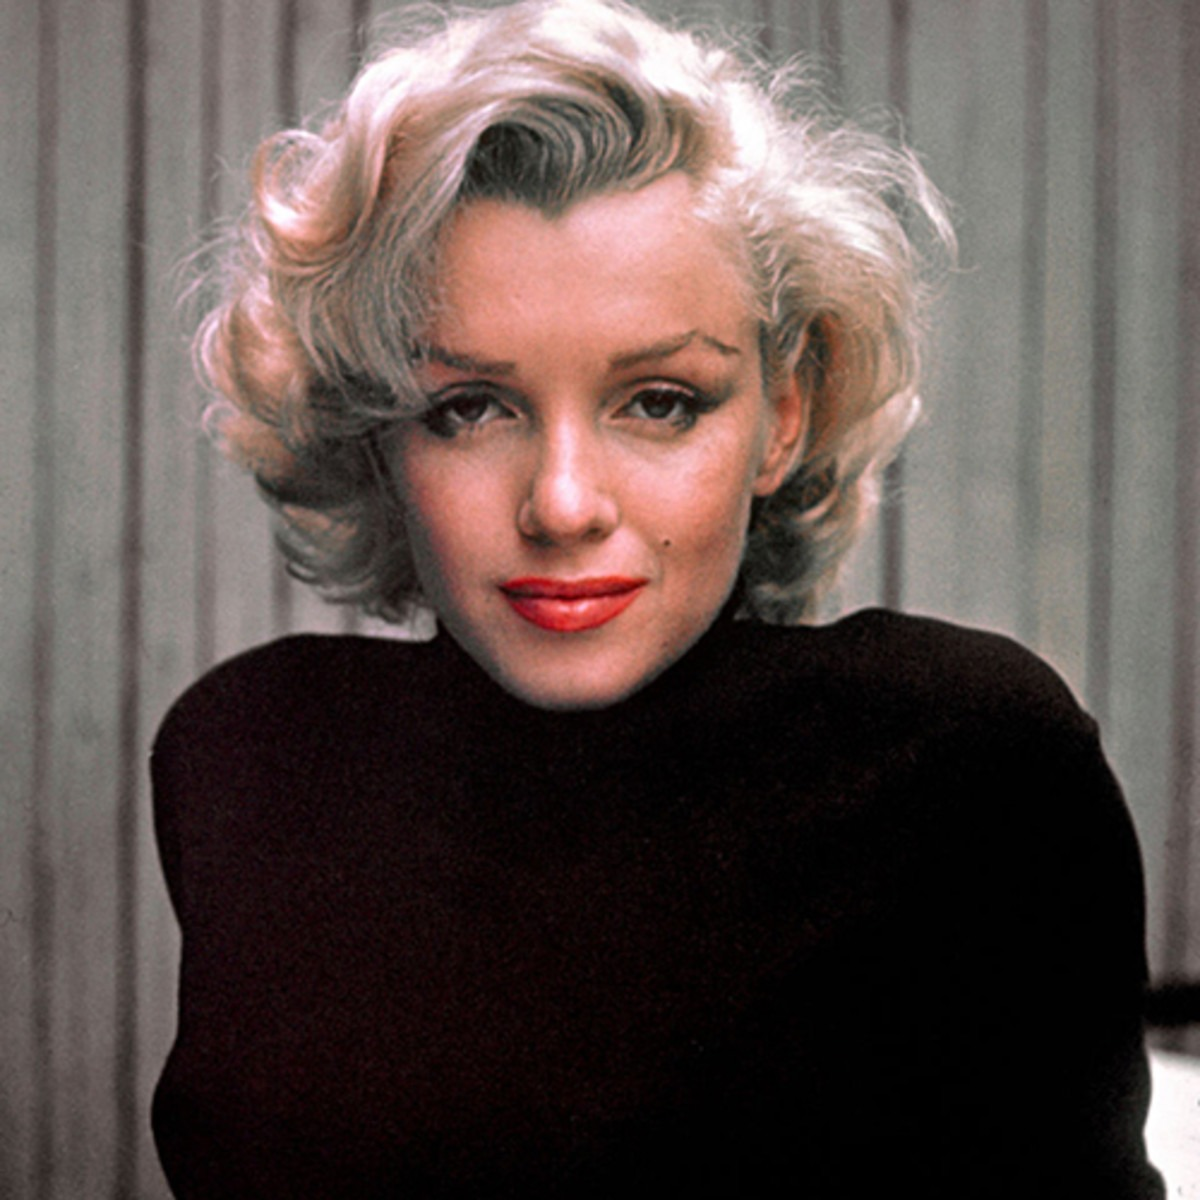 Marilyn Monroe committed suicide